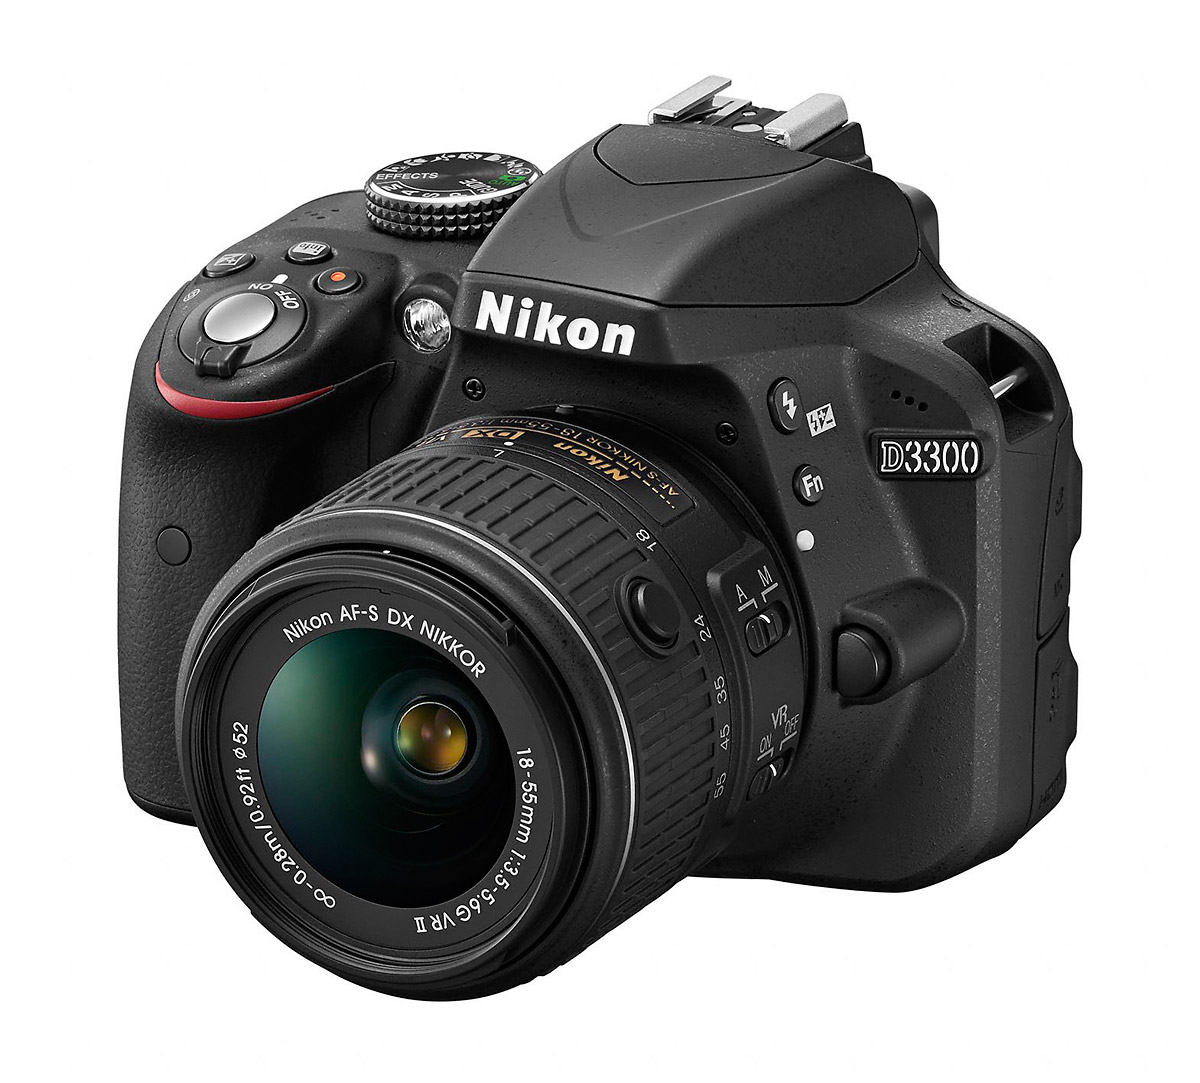 Nikon's 24-MP AA-Free D3300 Digital SLR